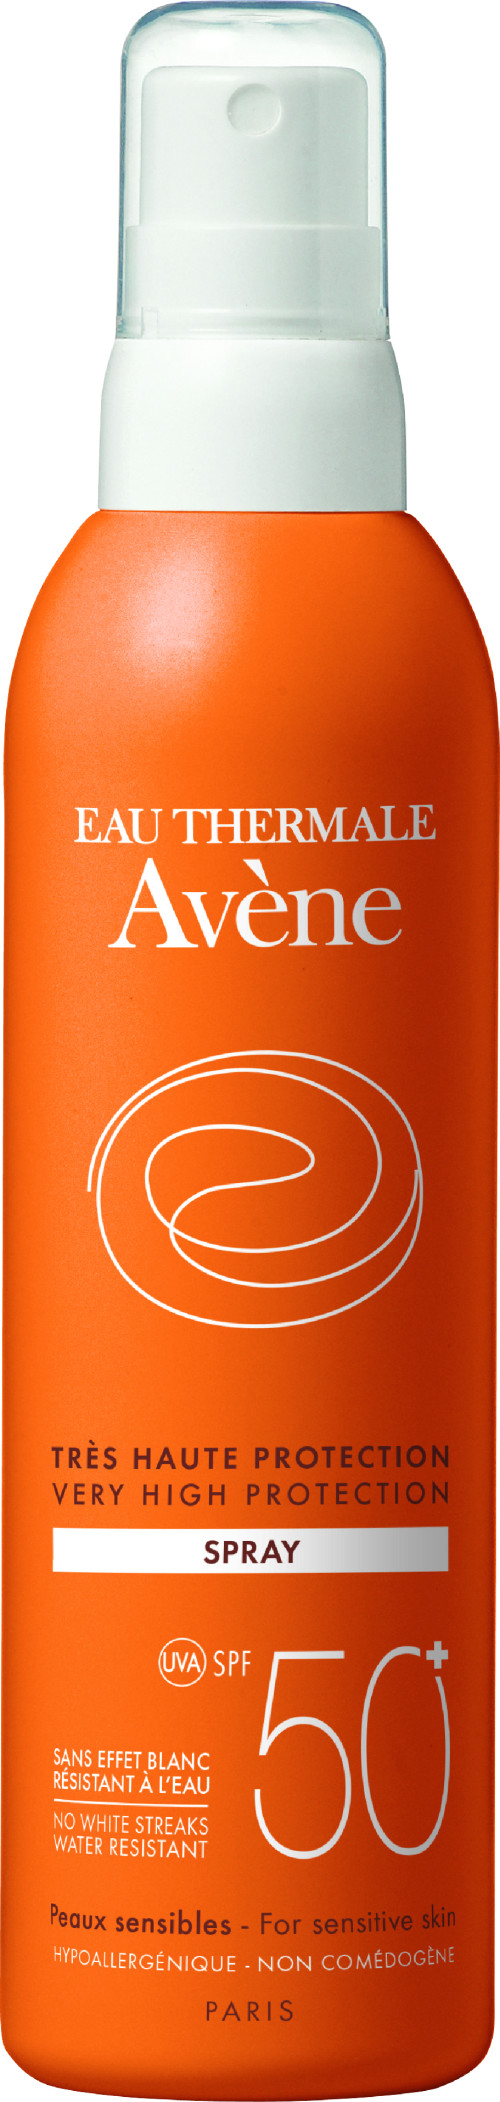 Avene Very High Protection spray SFP 50+ 200ml 18,50€ (23,44€)